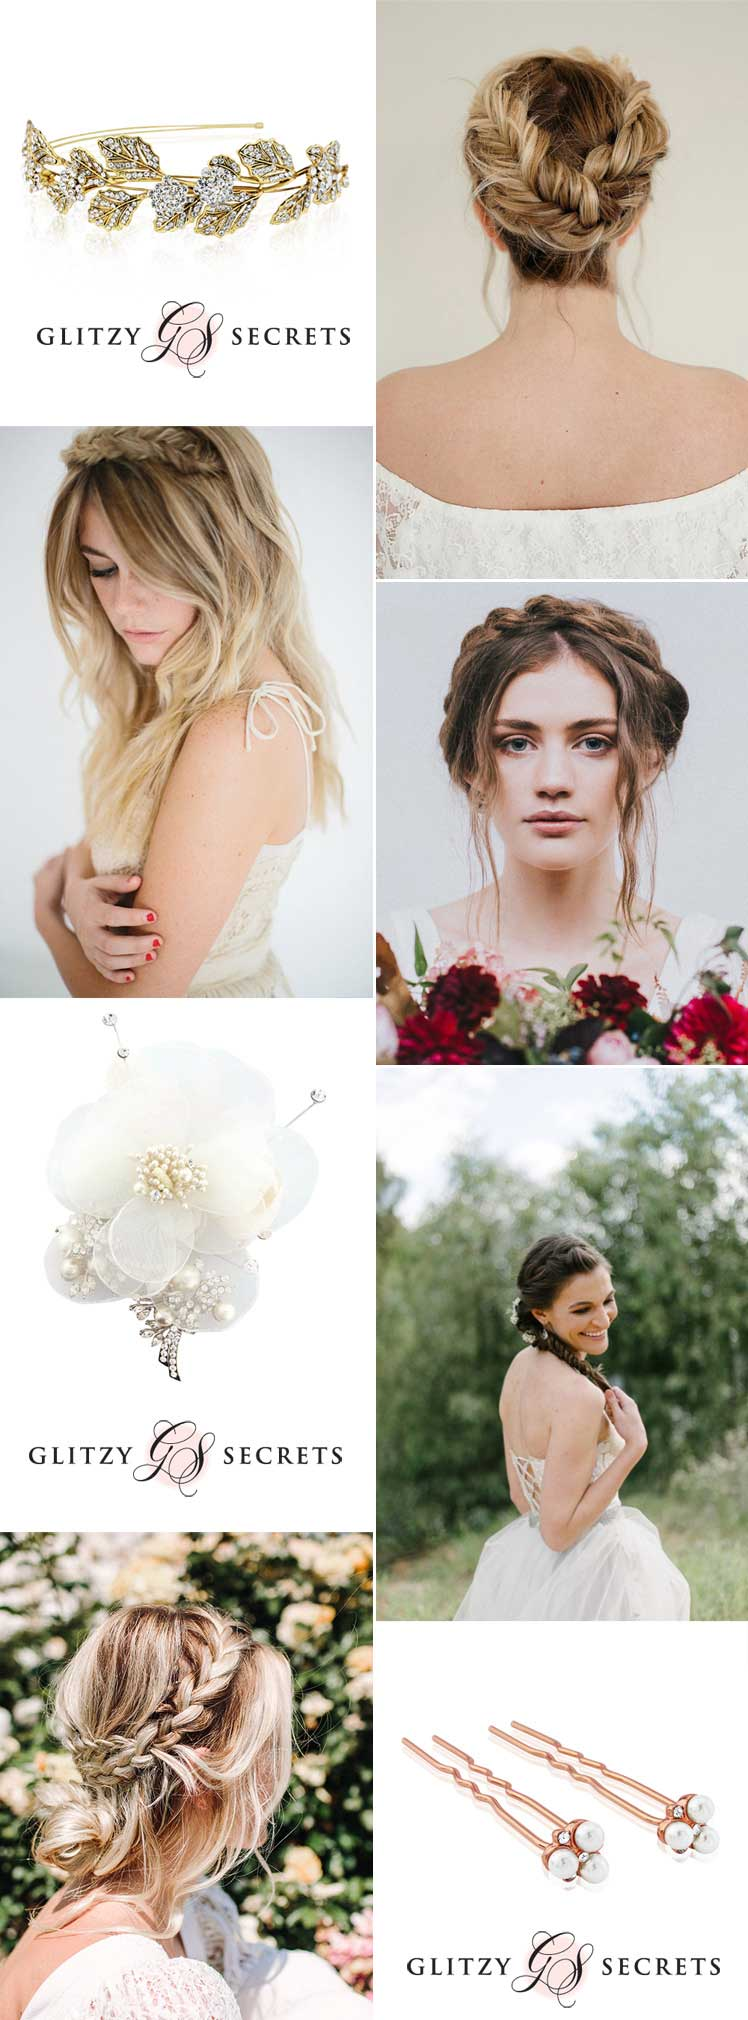 fabulous wedding hair accessories for bridal braids